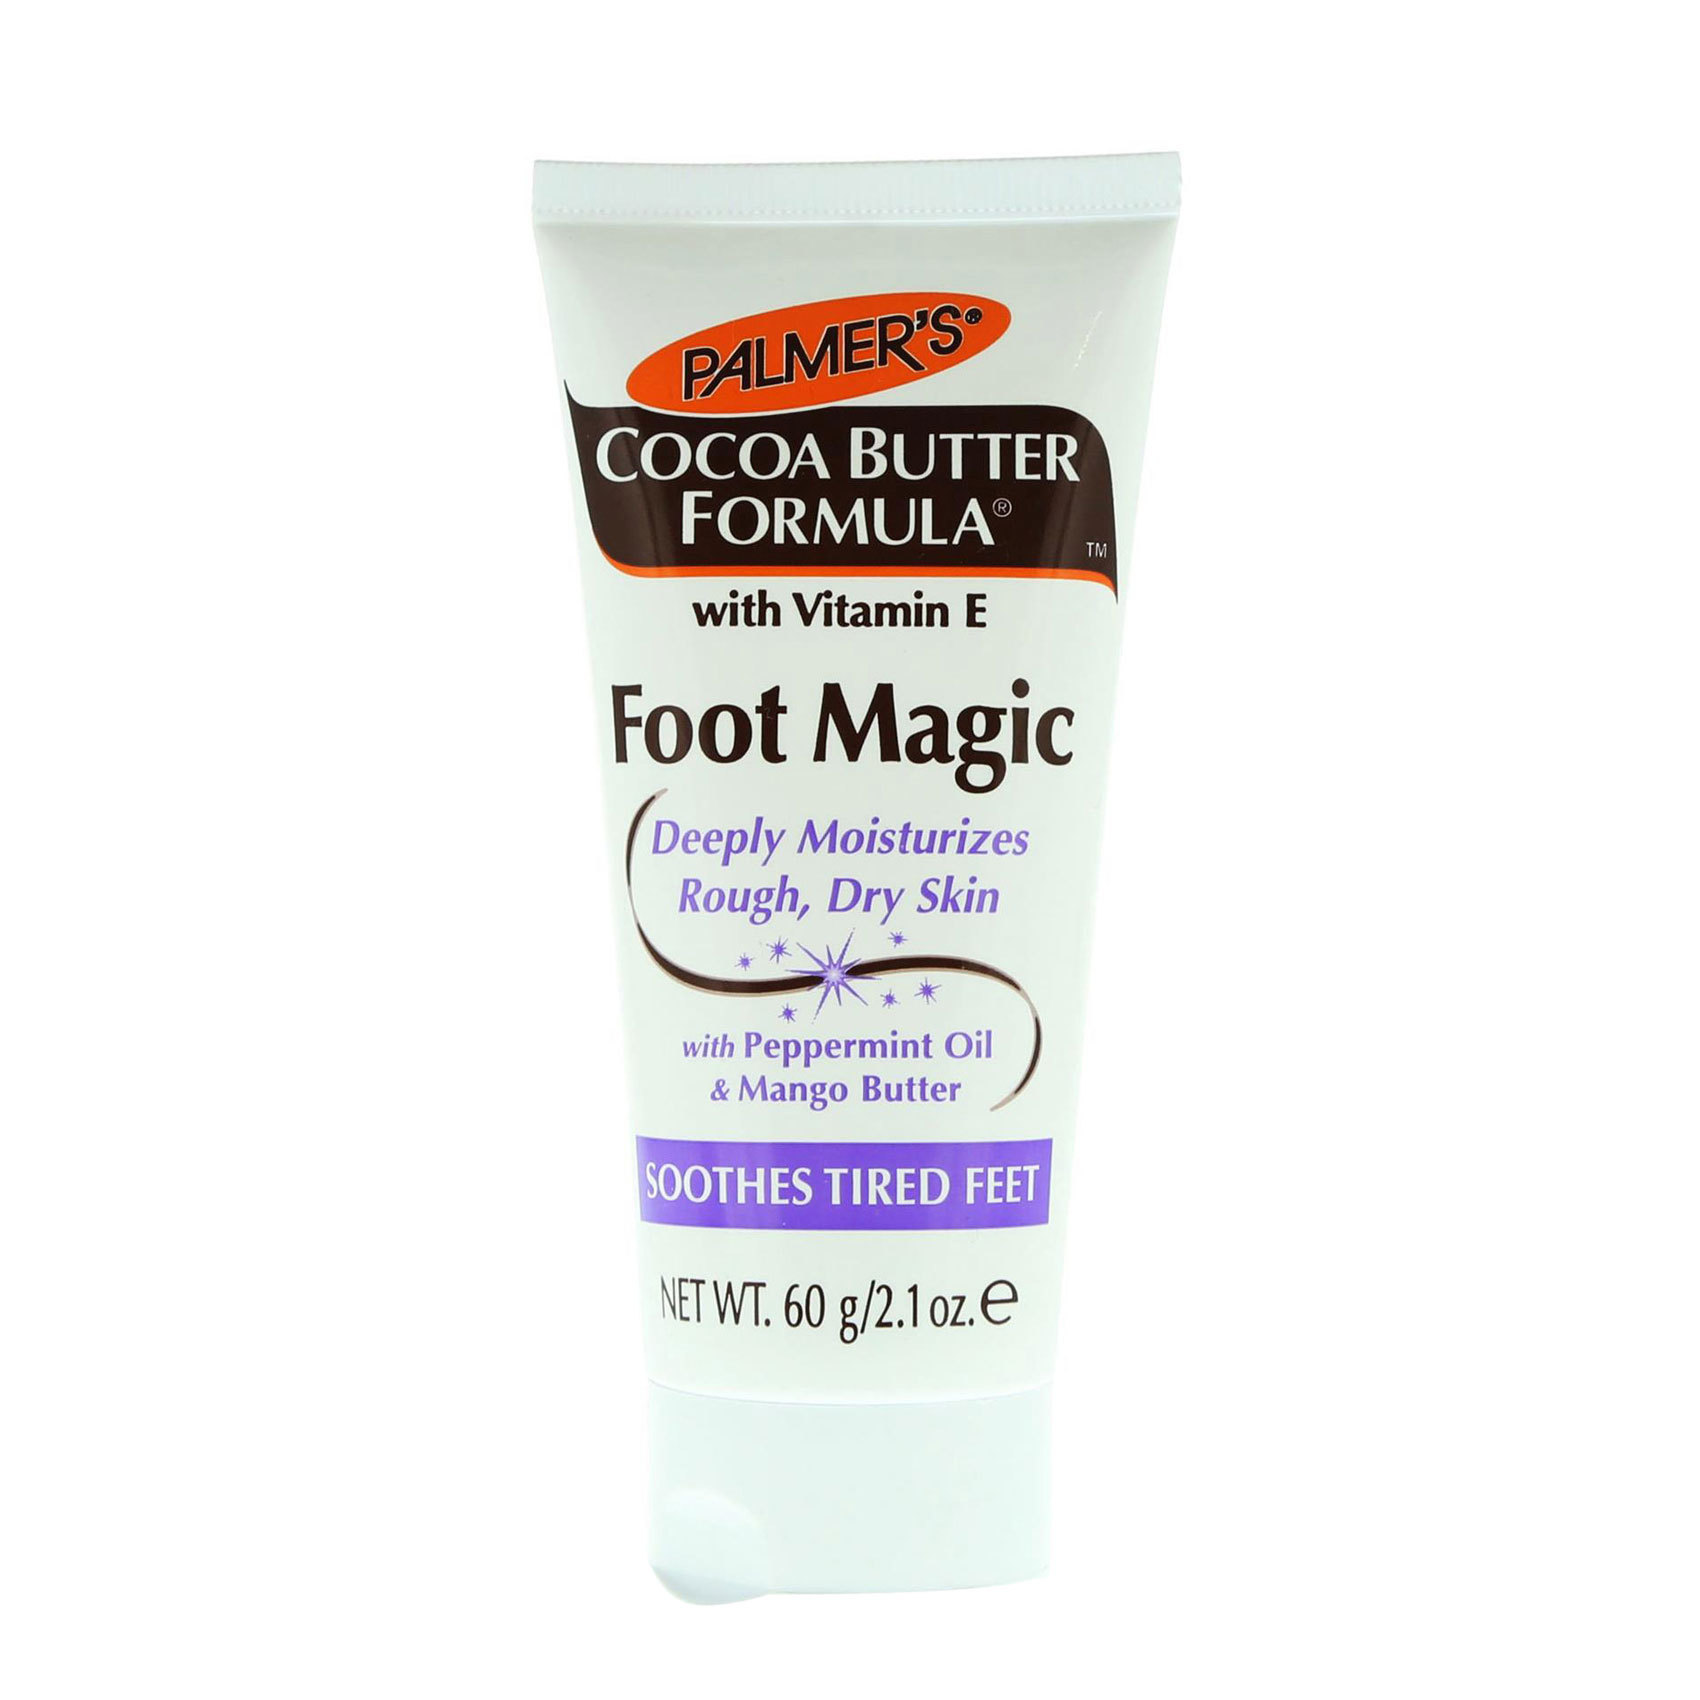 PALMERS FOOT MAGIC 60G